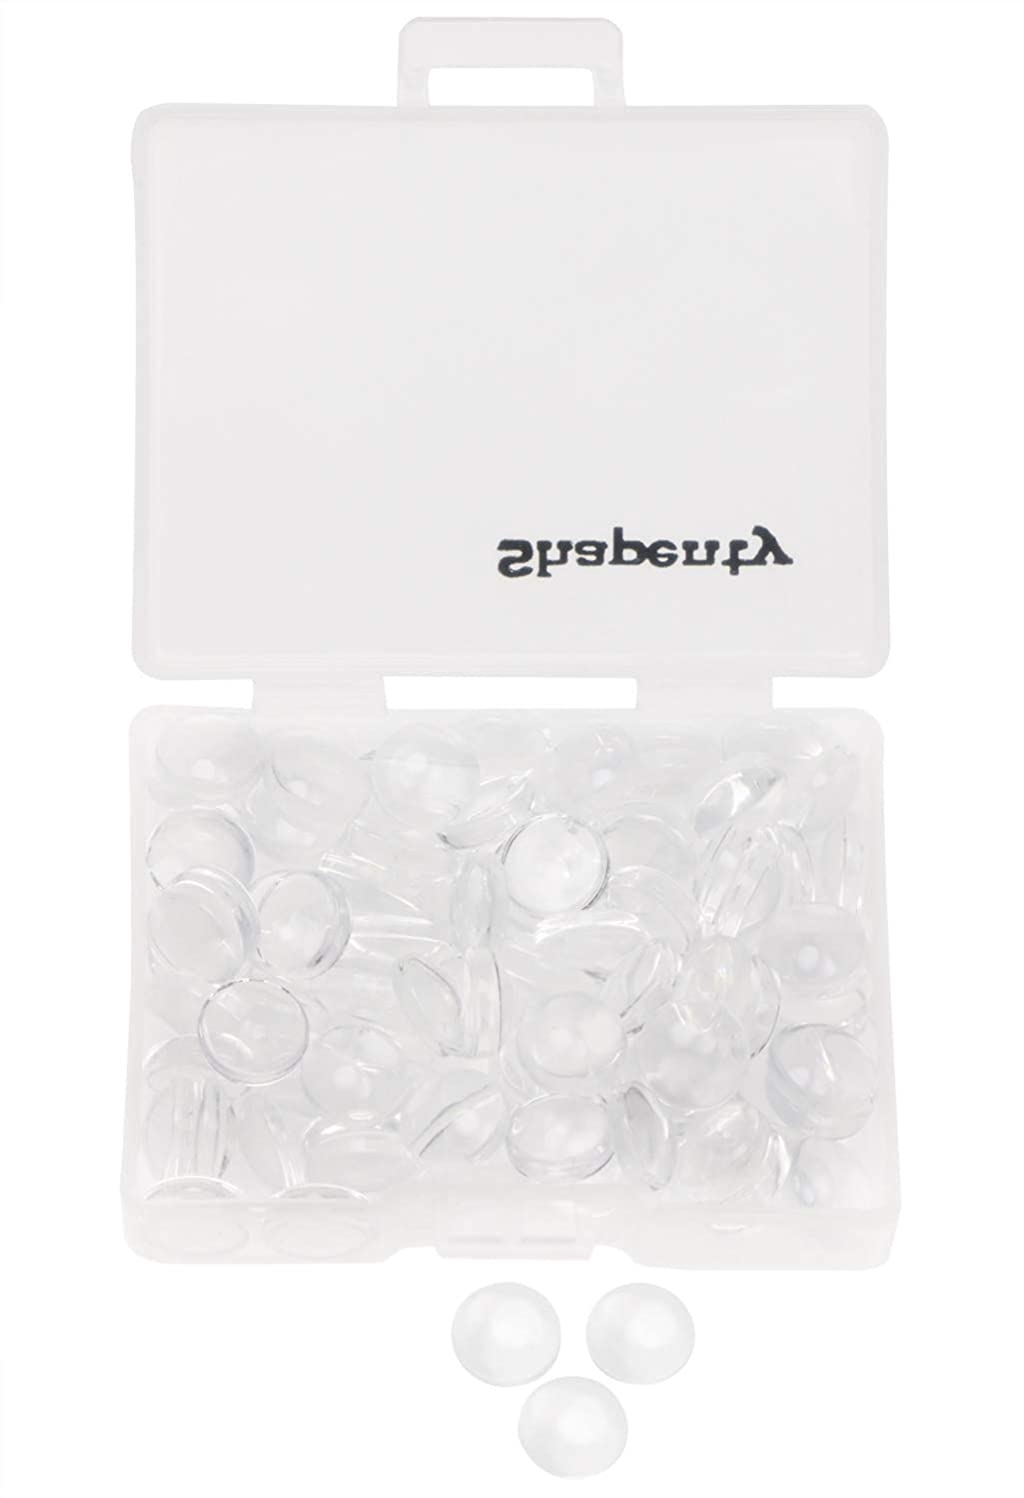 Shapenty Clear Round Glass Dome Tiles Cabochons Charms Bulk Small Flat Back Imitation Gemstone for Cameo Photo Pendant Necklace Bracelet Earring Ring Keychain DIY Craft Jewelry Making,100PCS (8 MM)